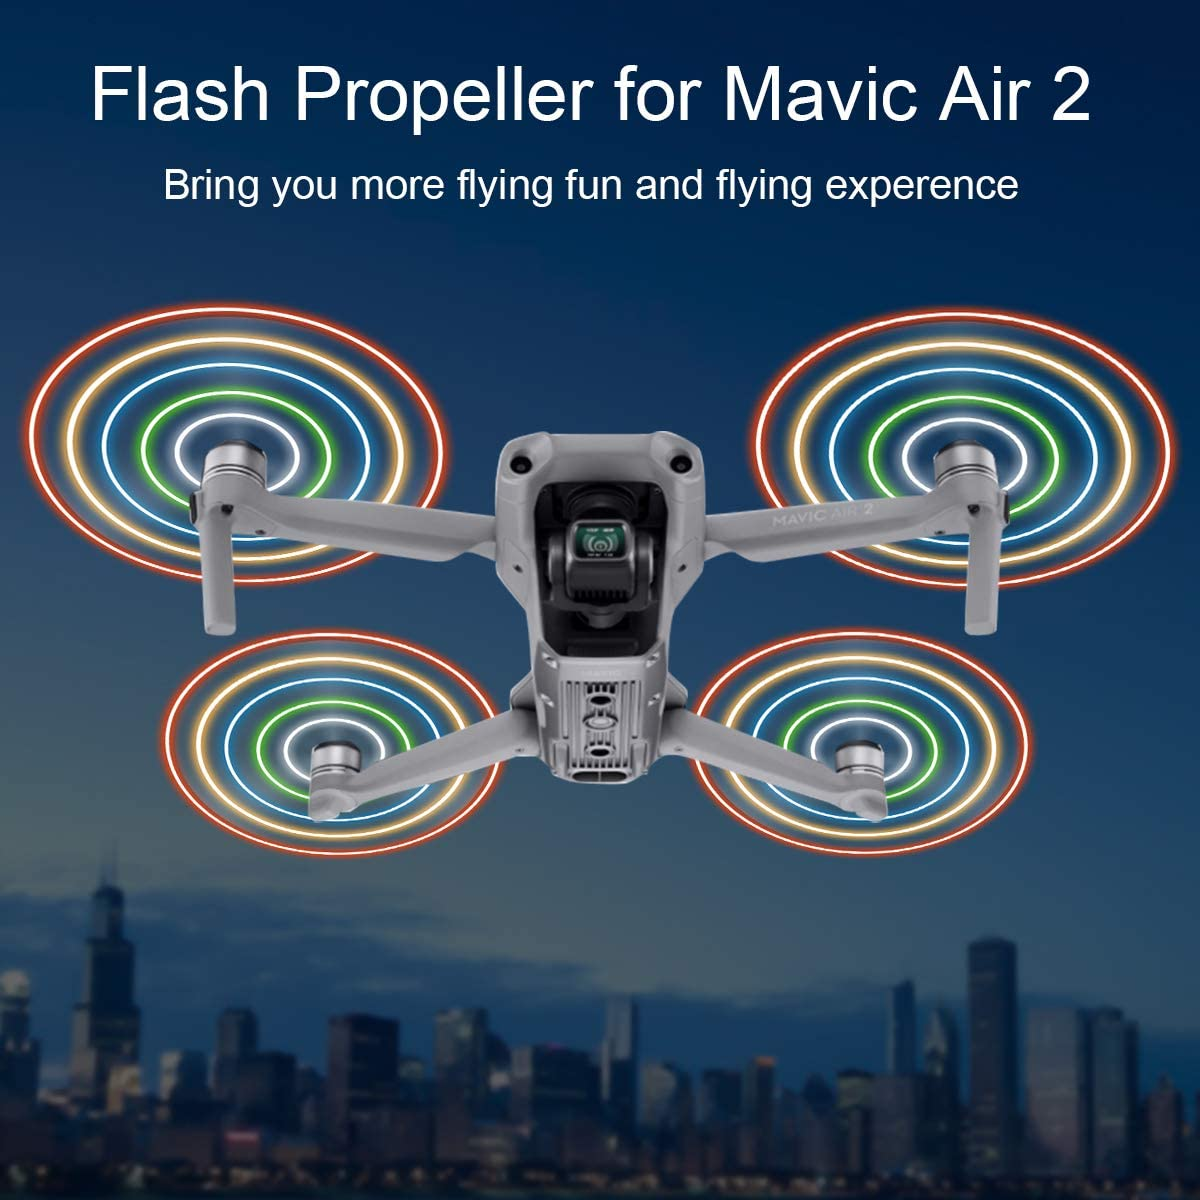 2 Pair FVW Mavic Air 2 LED Flash Propeller Foldable Props Low Noise Rechargeable LED Flash Propellers for DJI Mavic Air 2 Drone